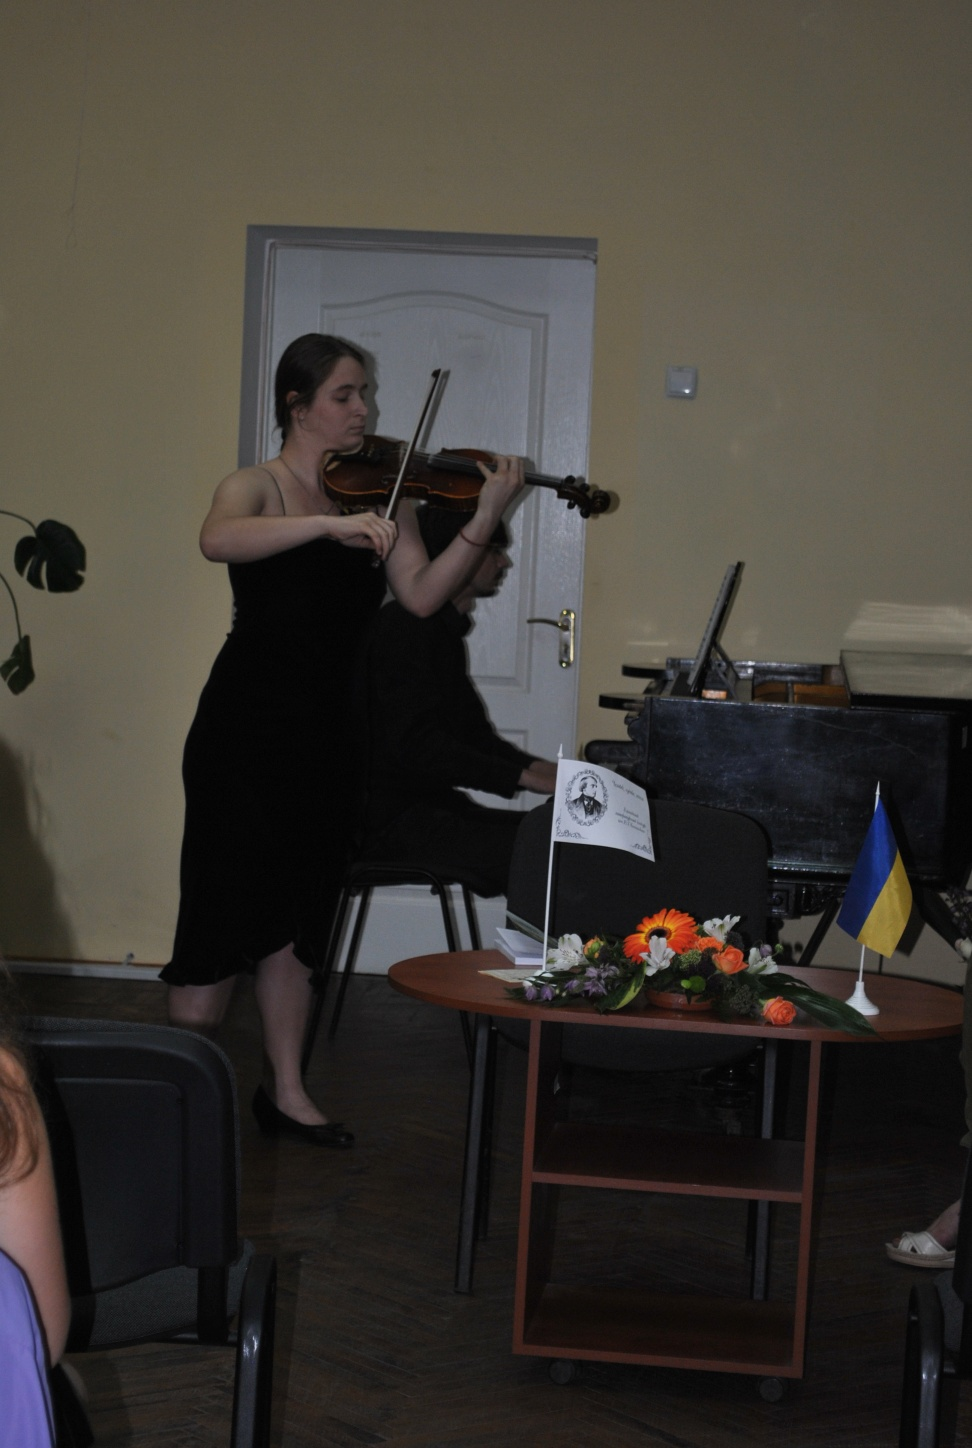 The Soloists of Kharkiv Philharmonic Society the violinist Inna Kirilenko and the pianist Stanislav Kalinin are opening the event